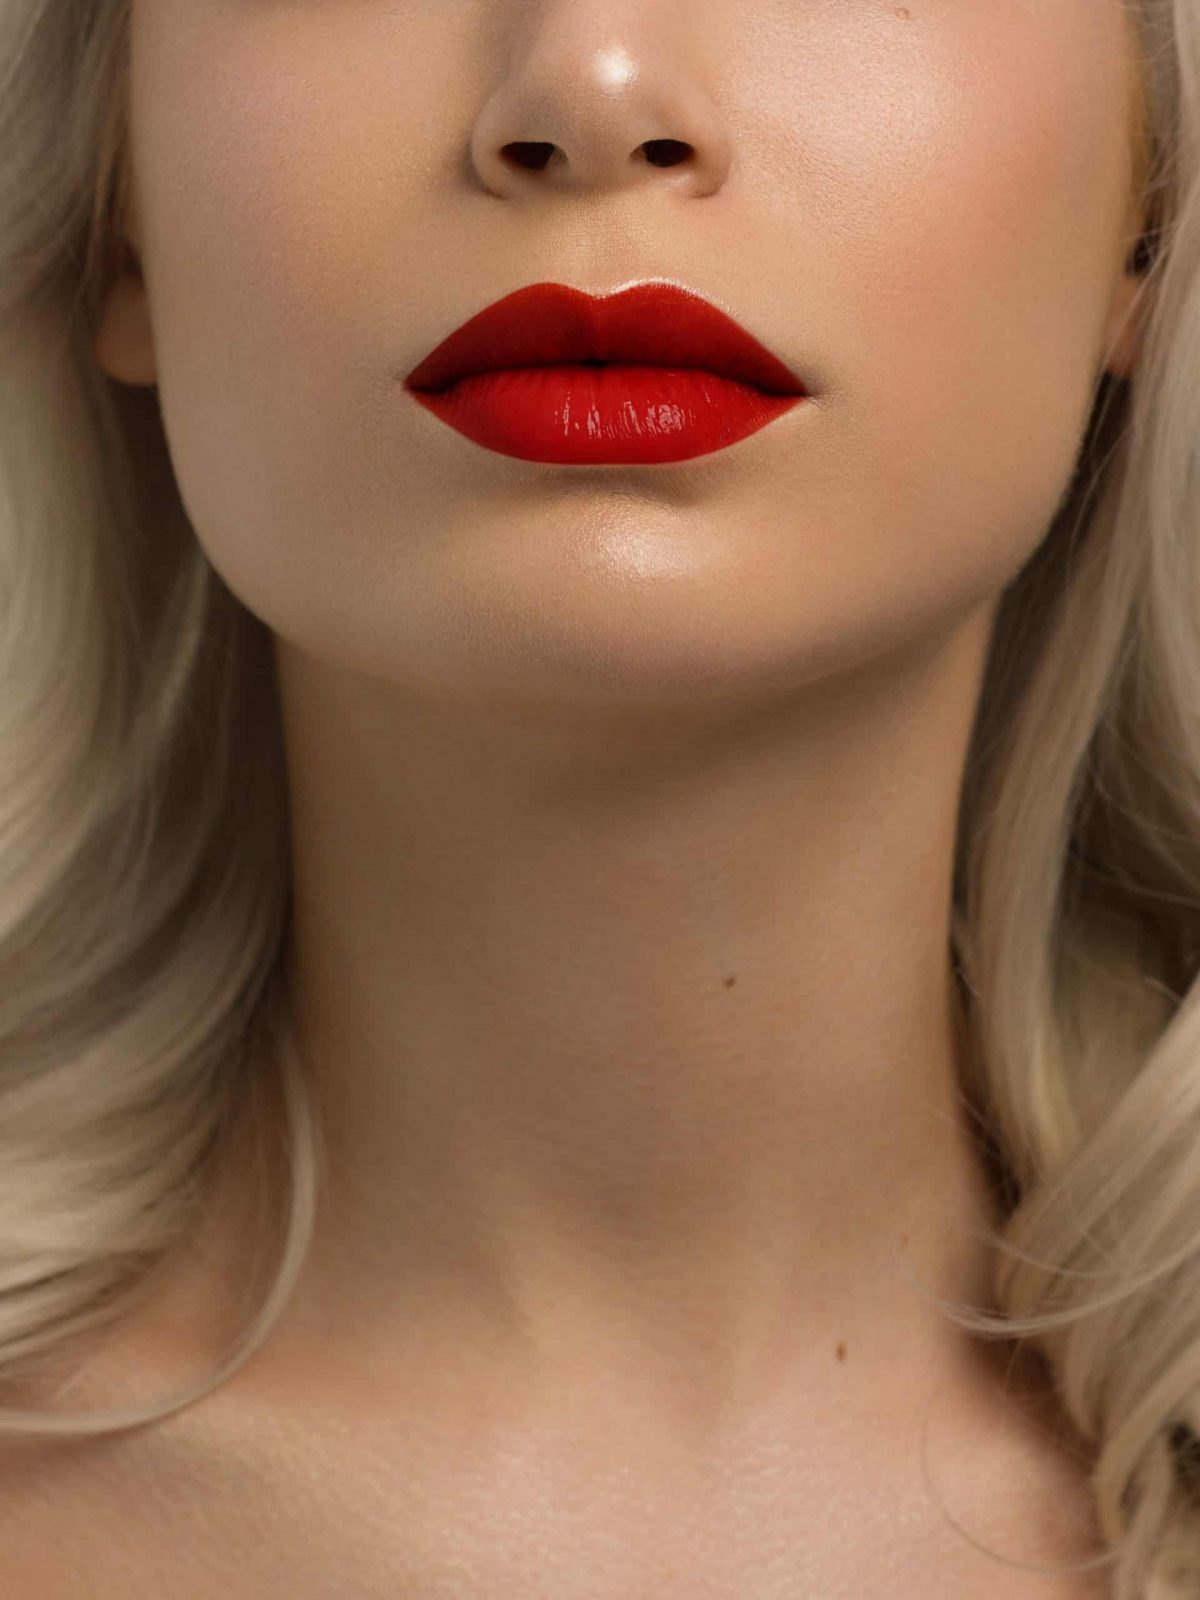 Omniya Clinic is the best clinic in London for dermal lip fillers, natural looking lips with the best doctors in London